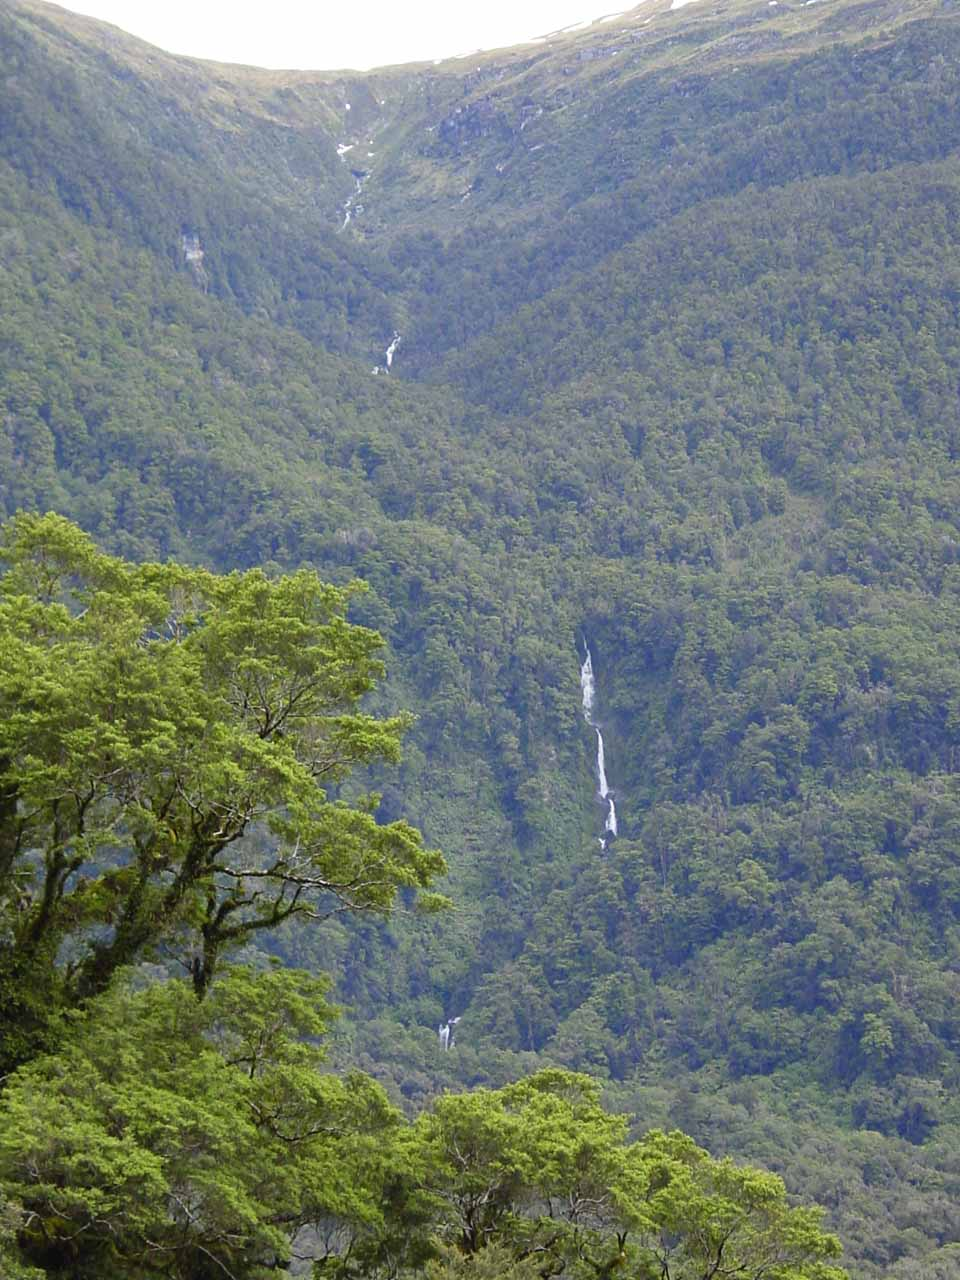 Another tall thin waterfall seen across the Haast River Valley